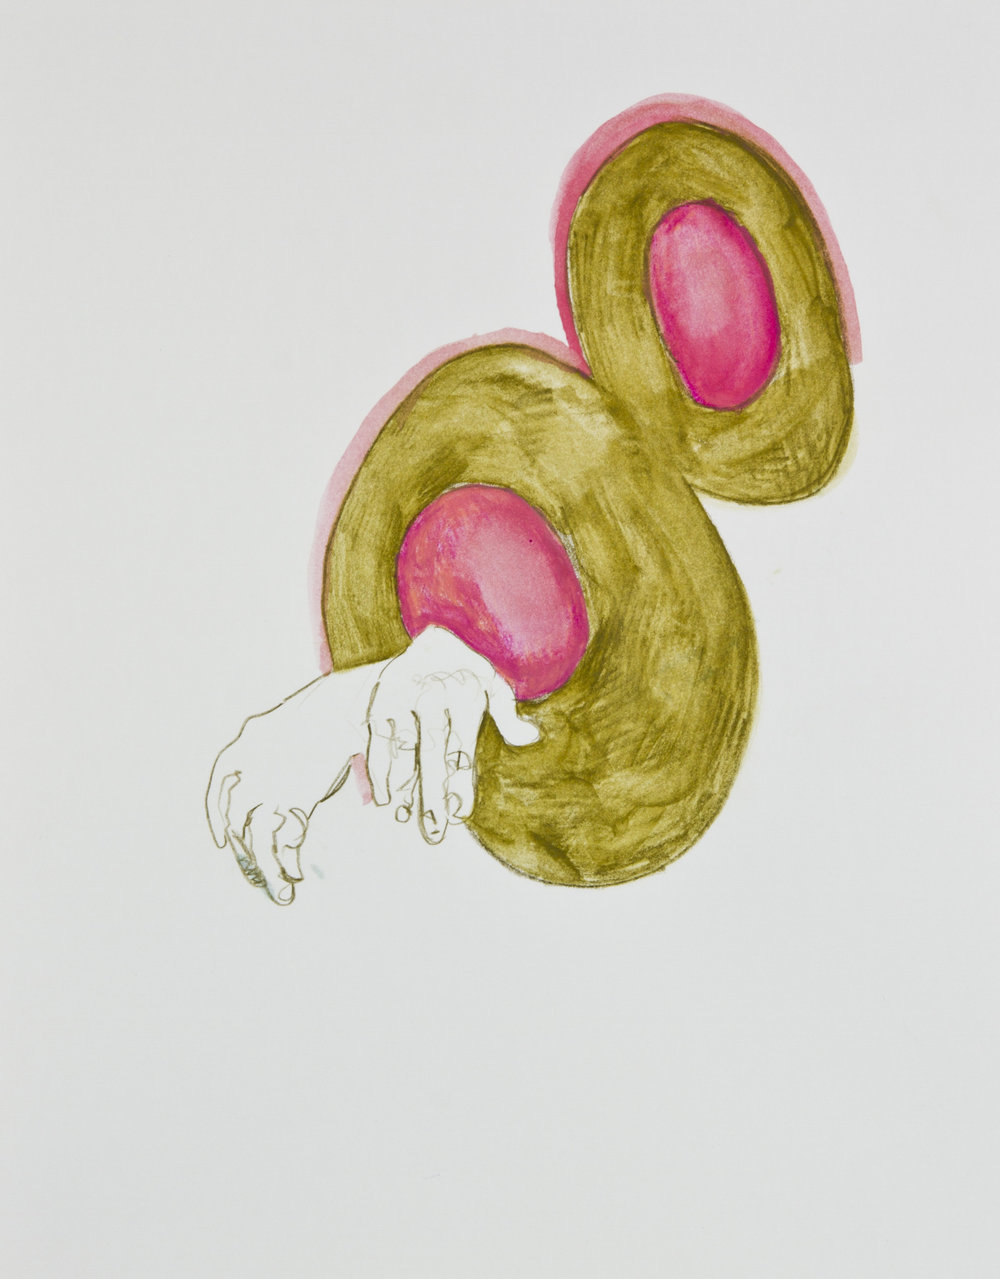 Double O, 2013, graphite, crayon and watercolor pencil on paper, 11x14 inches